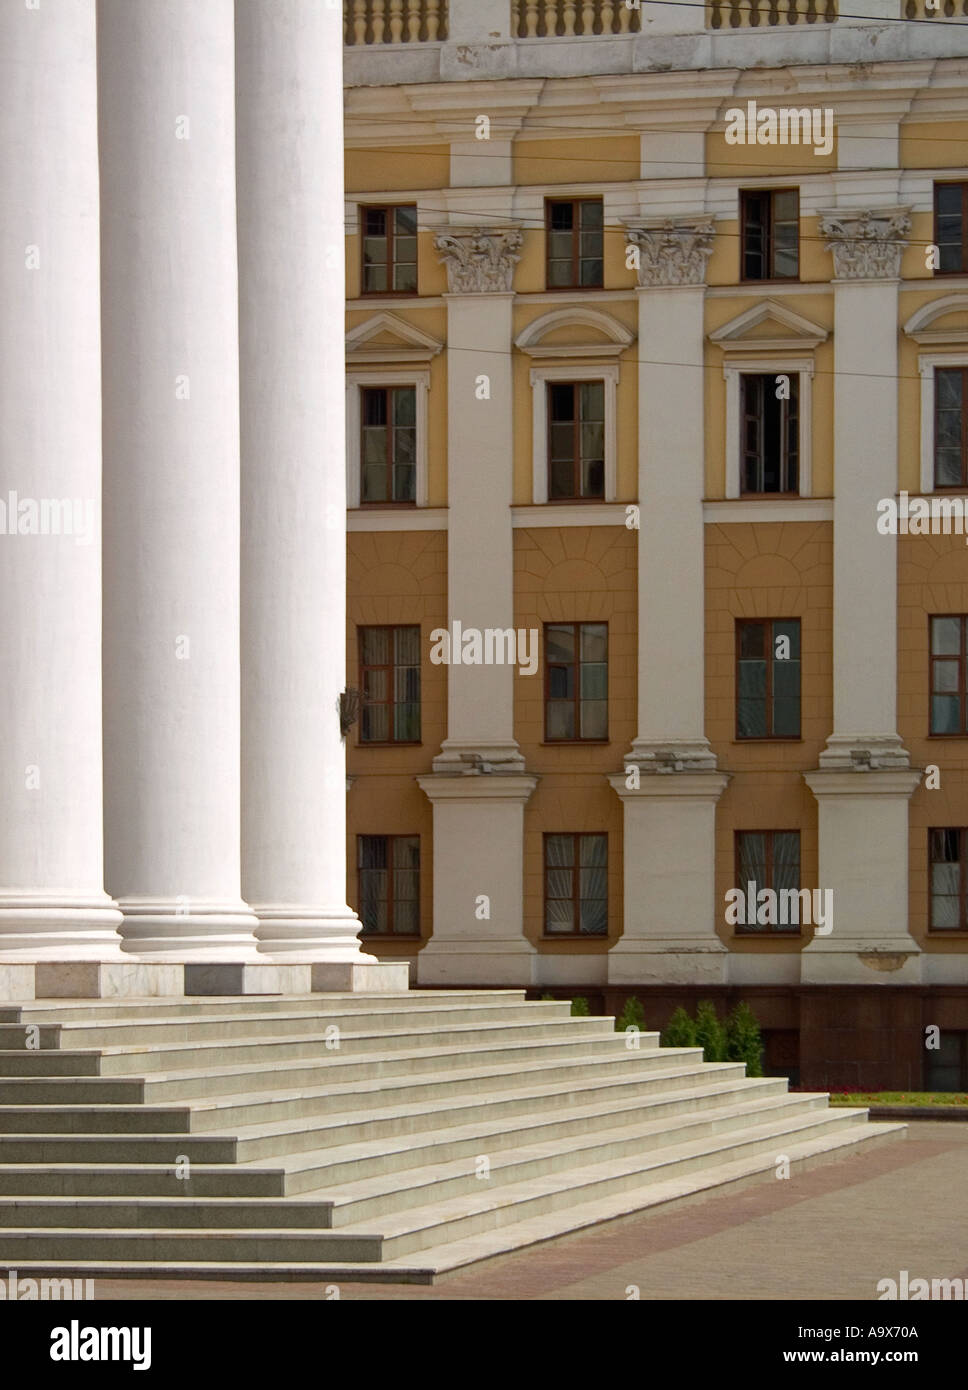 KGB HQ in Minsk Belarus - Stock Image